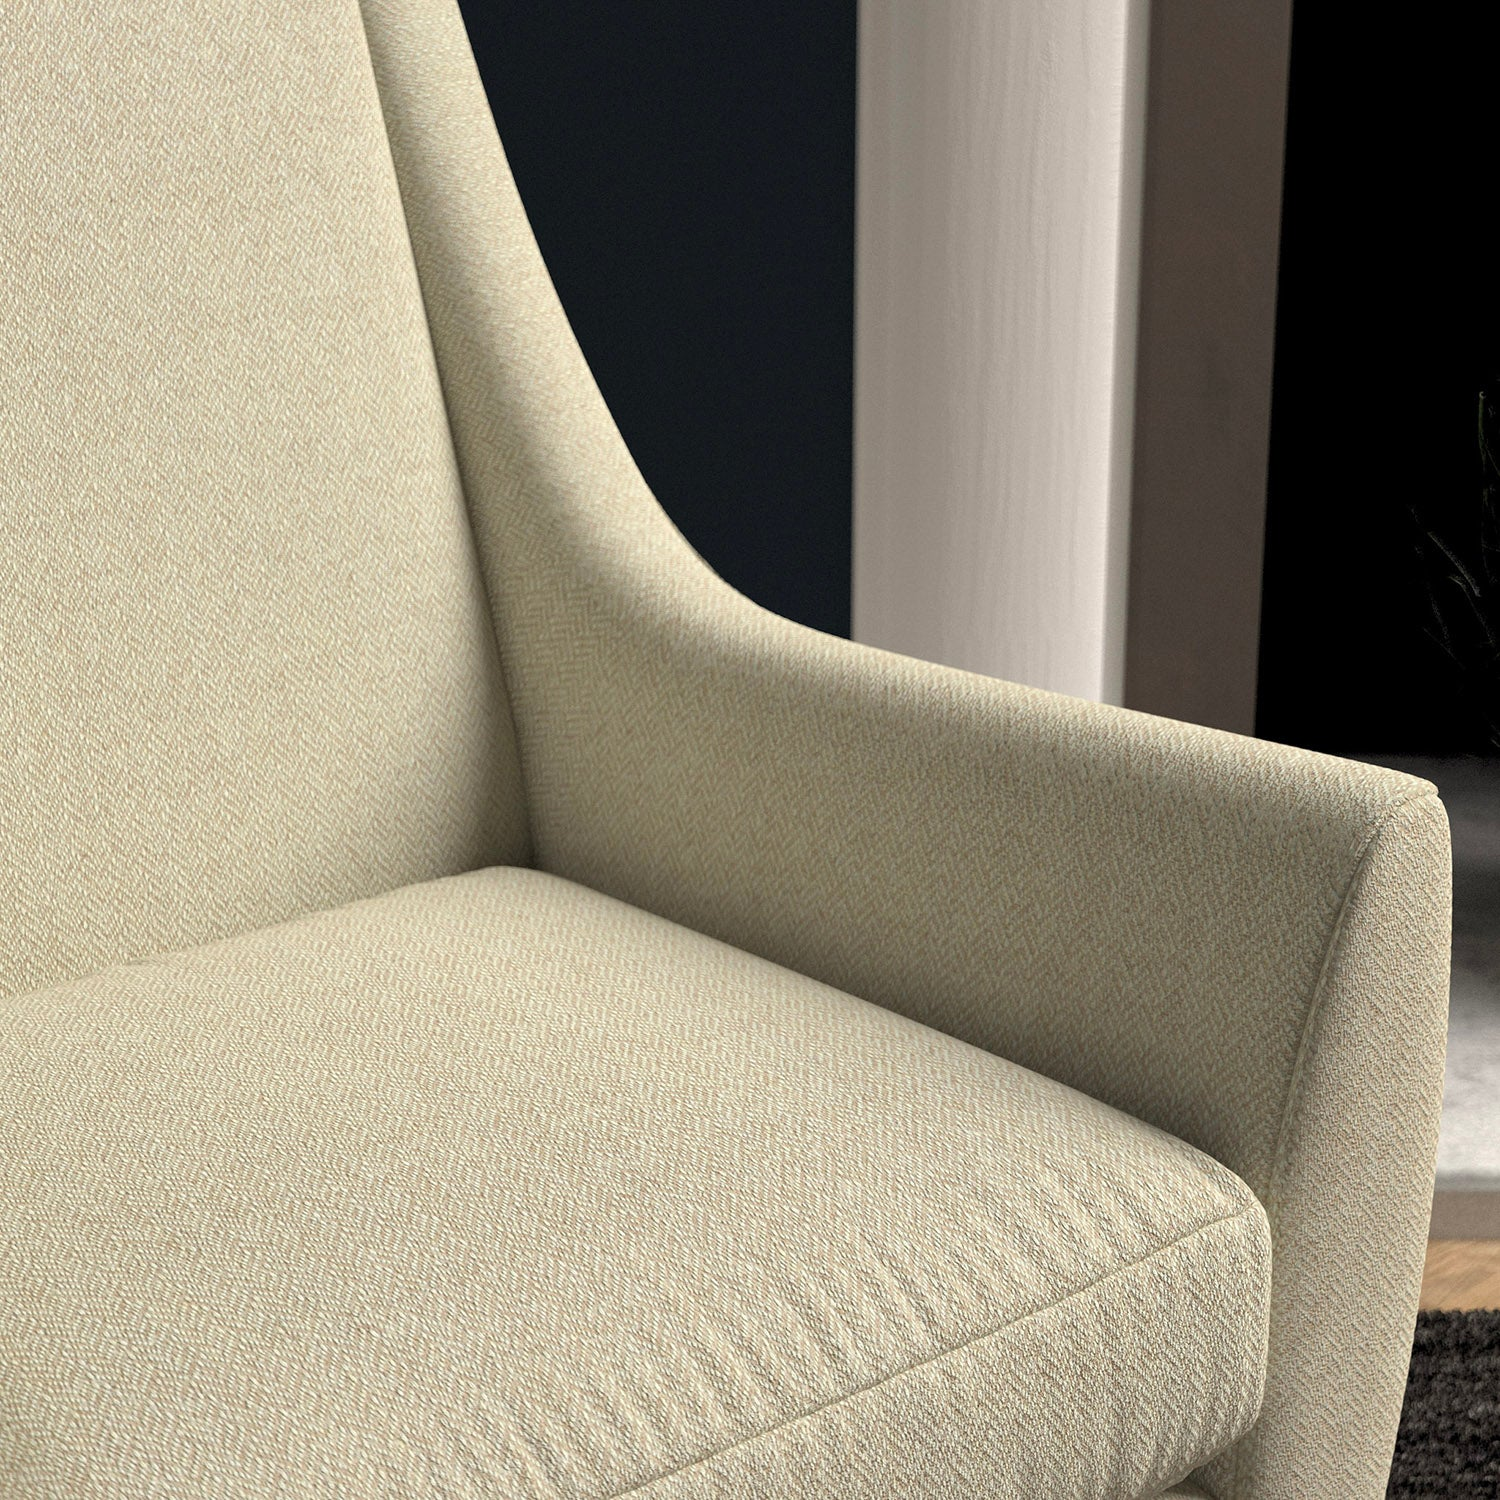 Chair upholstered in a cream herringbone wool weave upholstery fabric